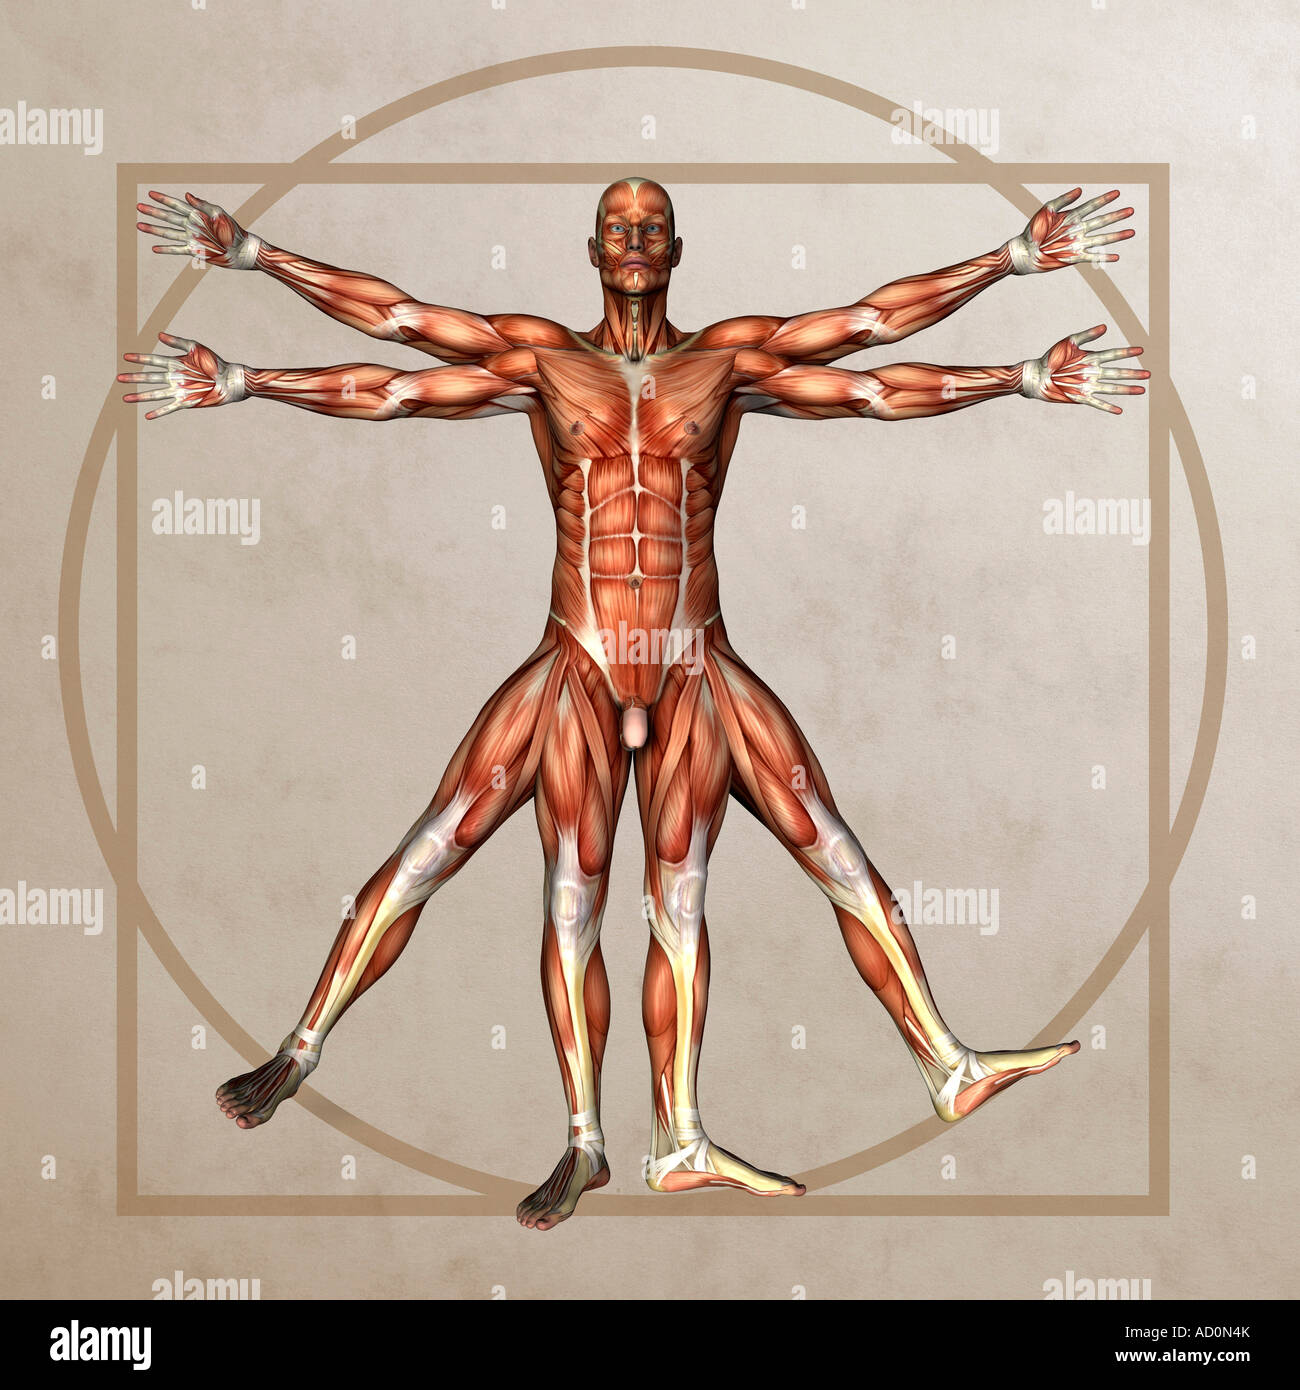 Vitruvian Man Muscles Stock Photos Vitruvian Man Muscles Stock